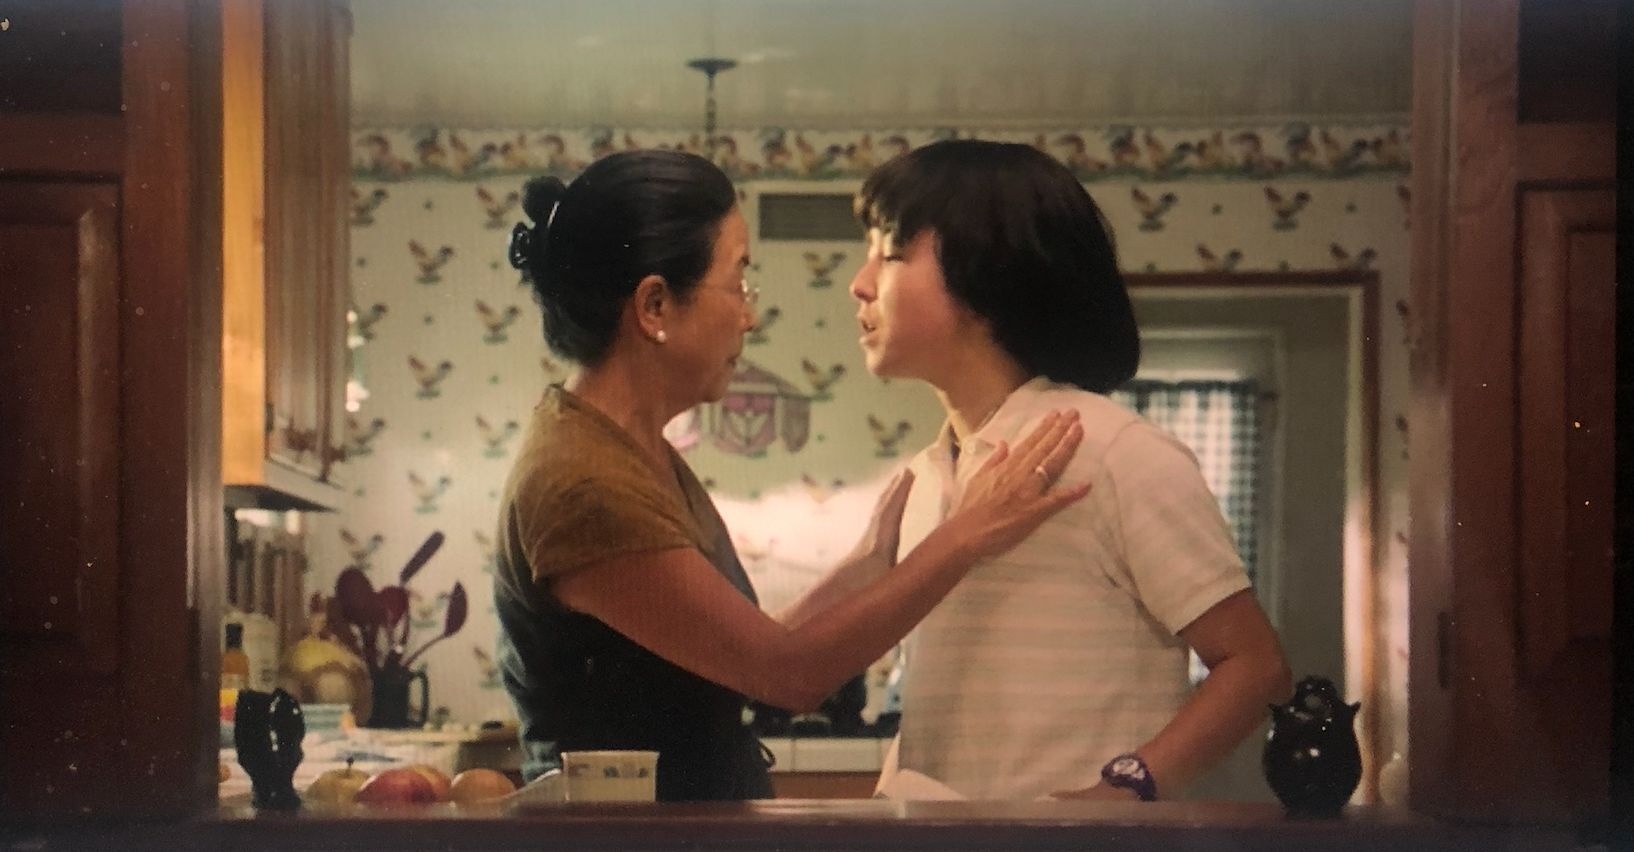 Maya's mother is a strict Asian mom whose love for her daughter is undeniable.